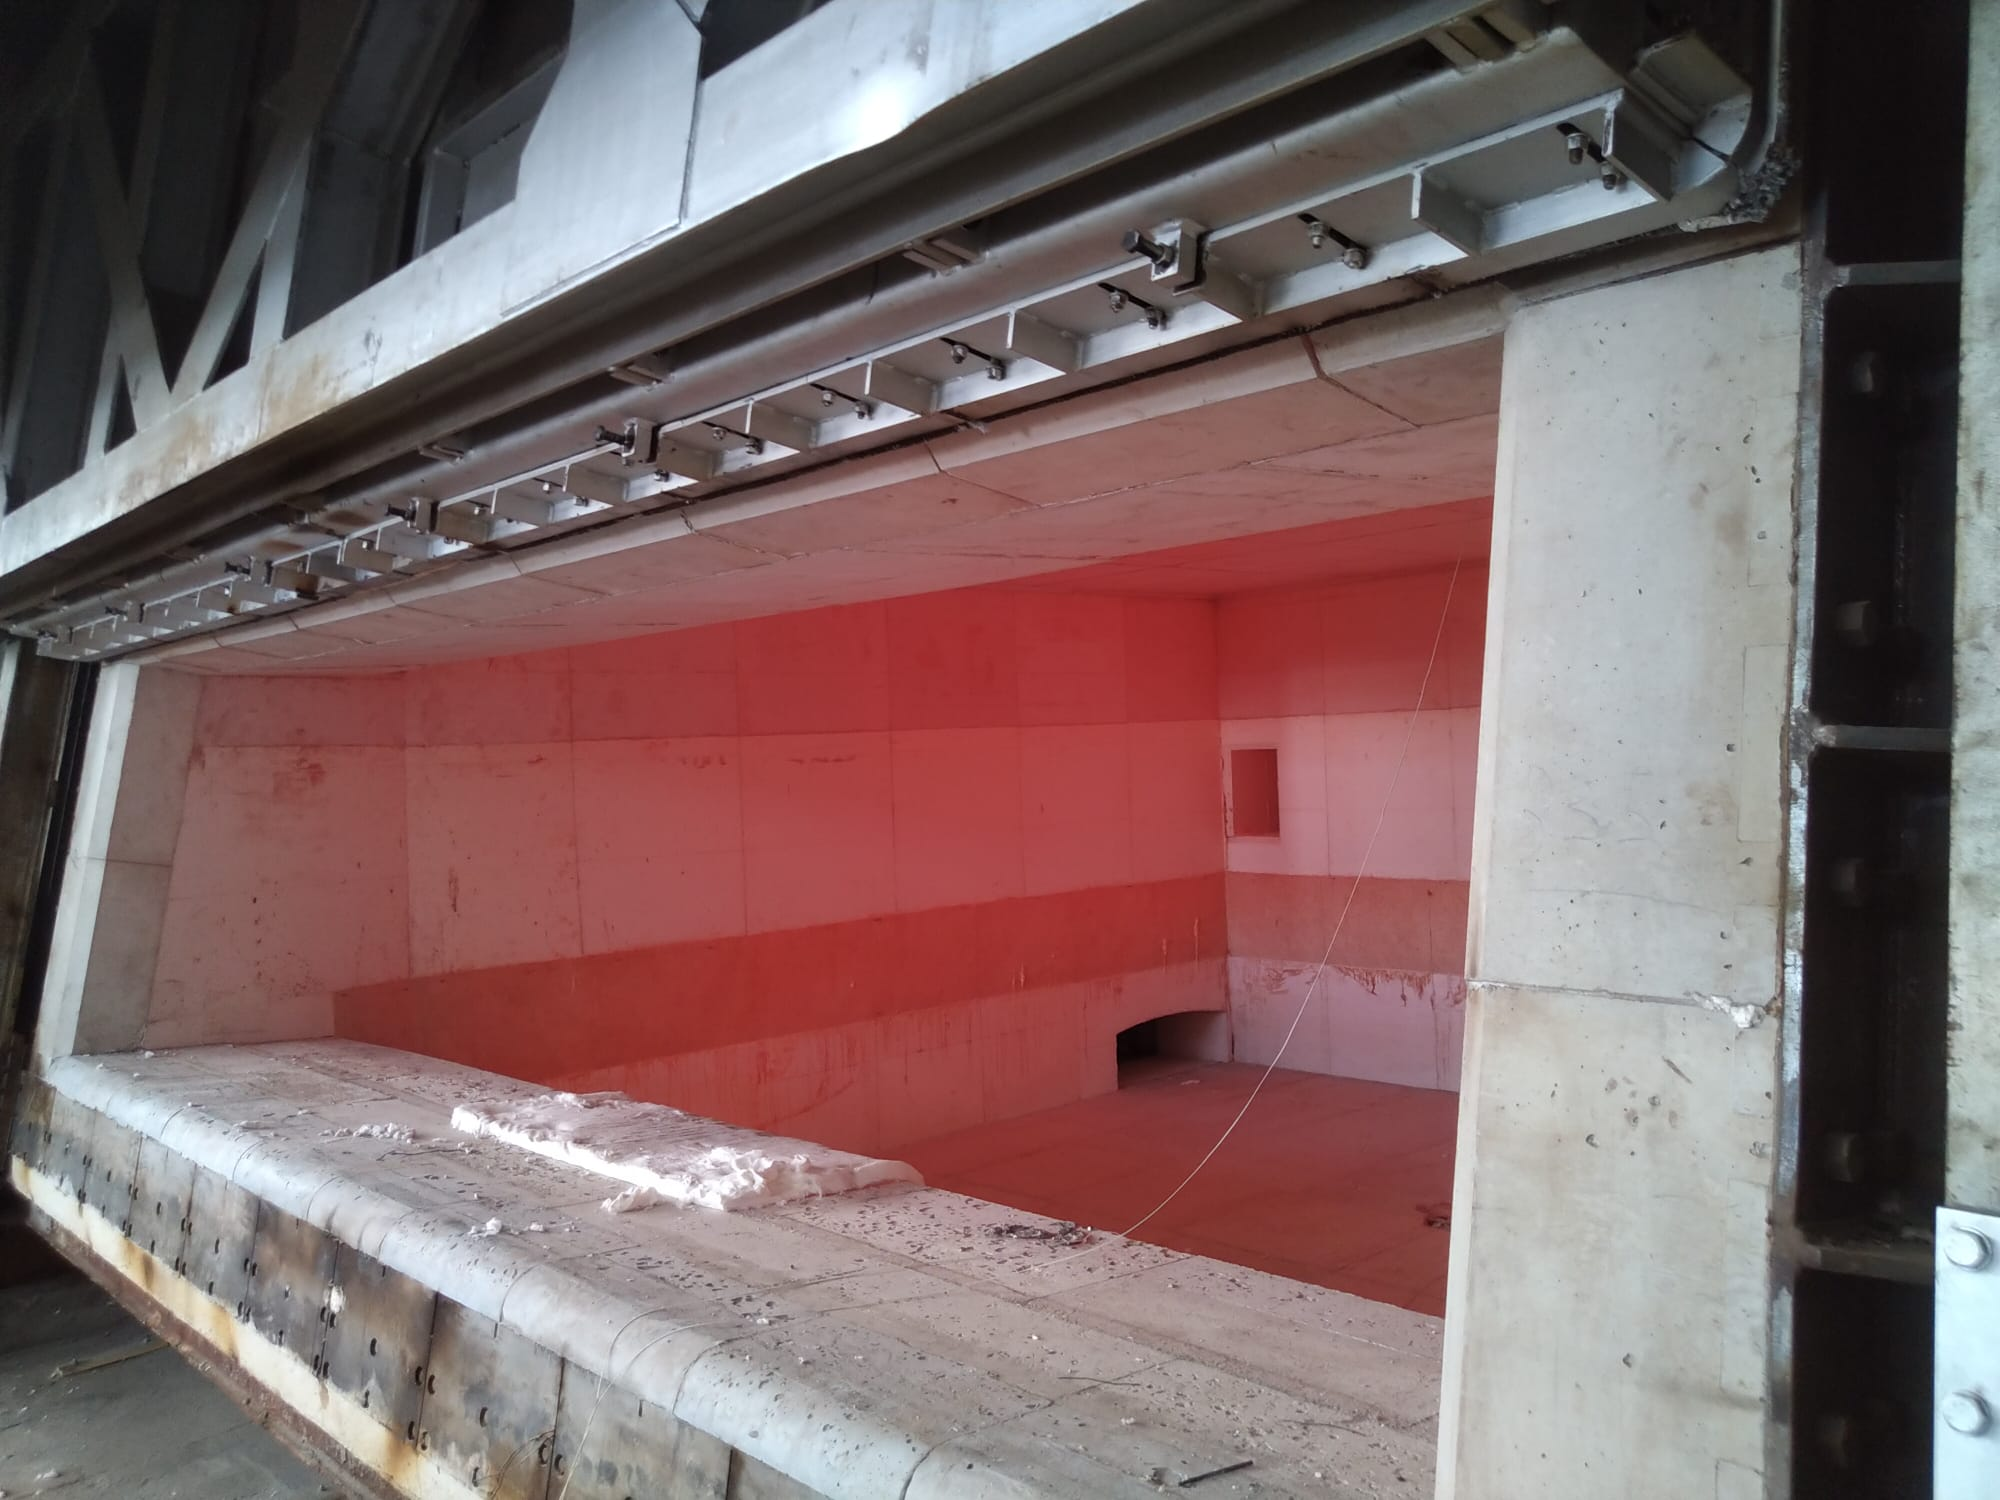 New lining of a reverberatory melting furnace in italy